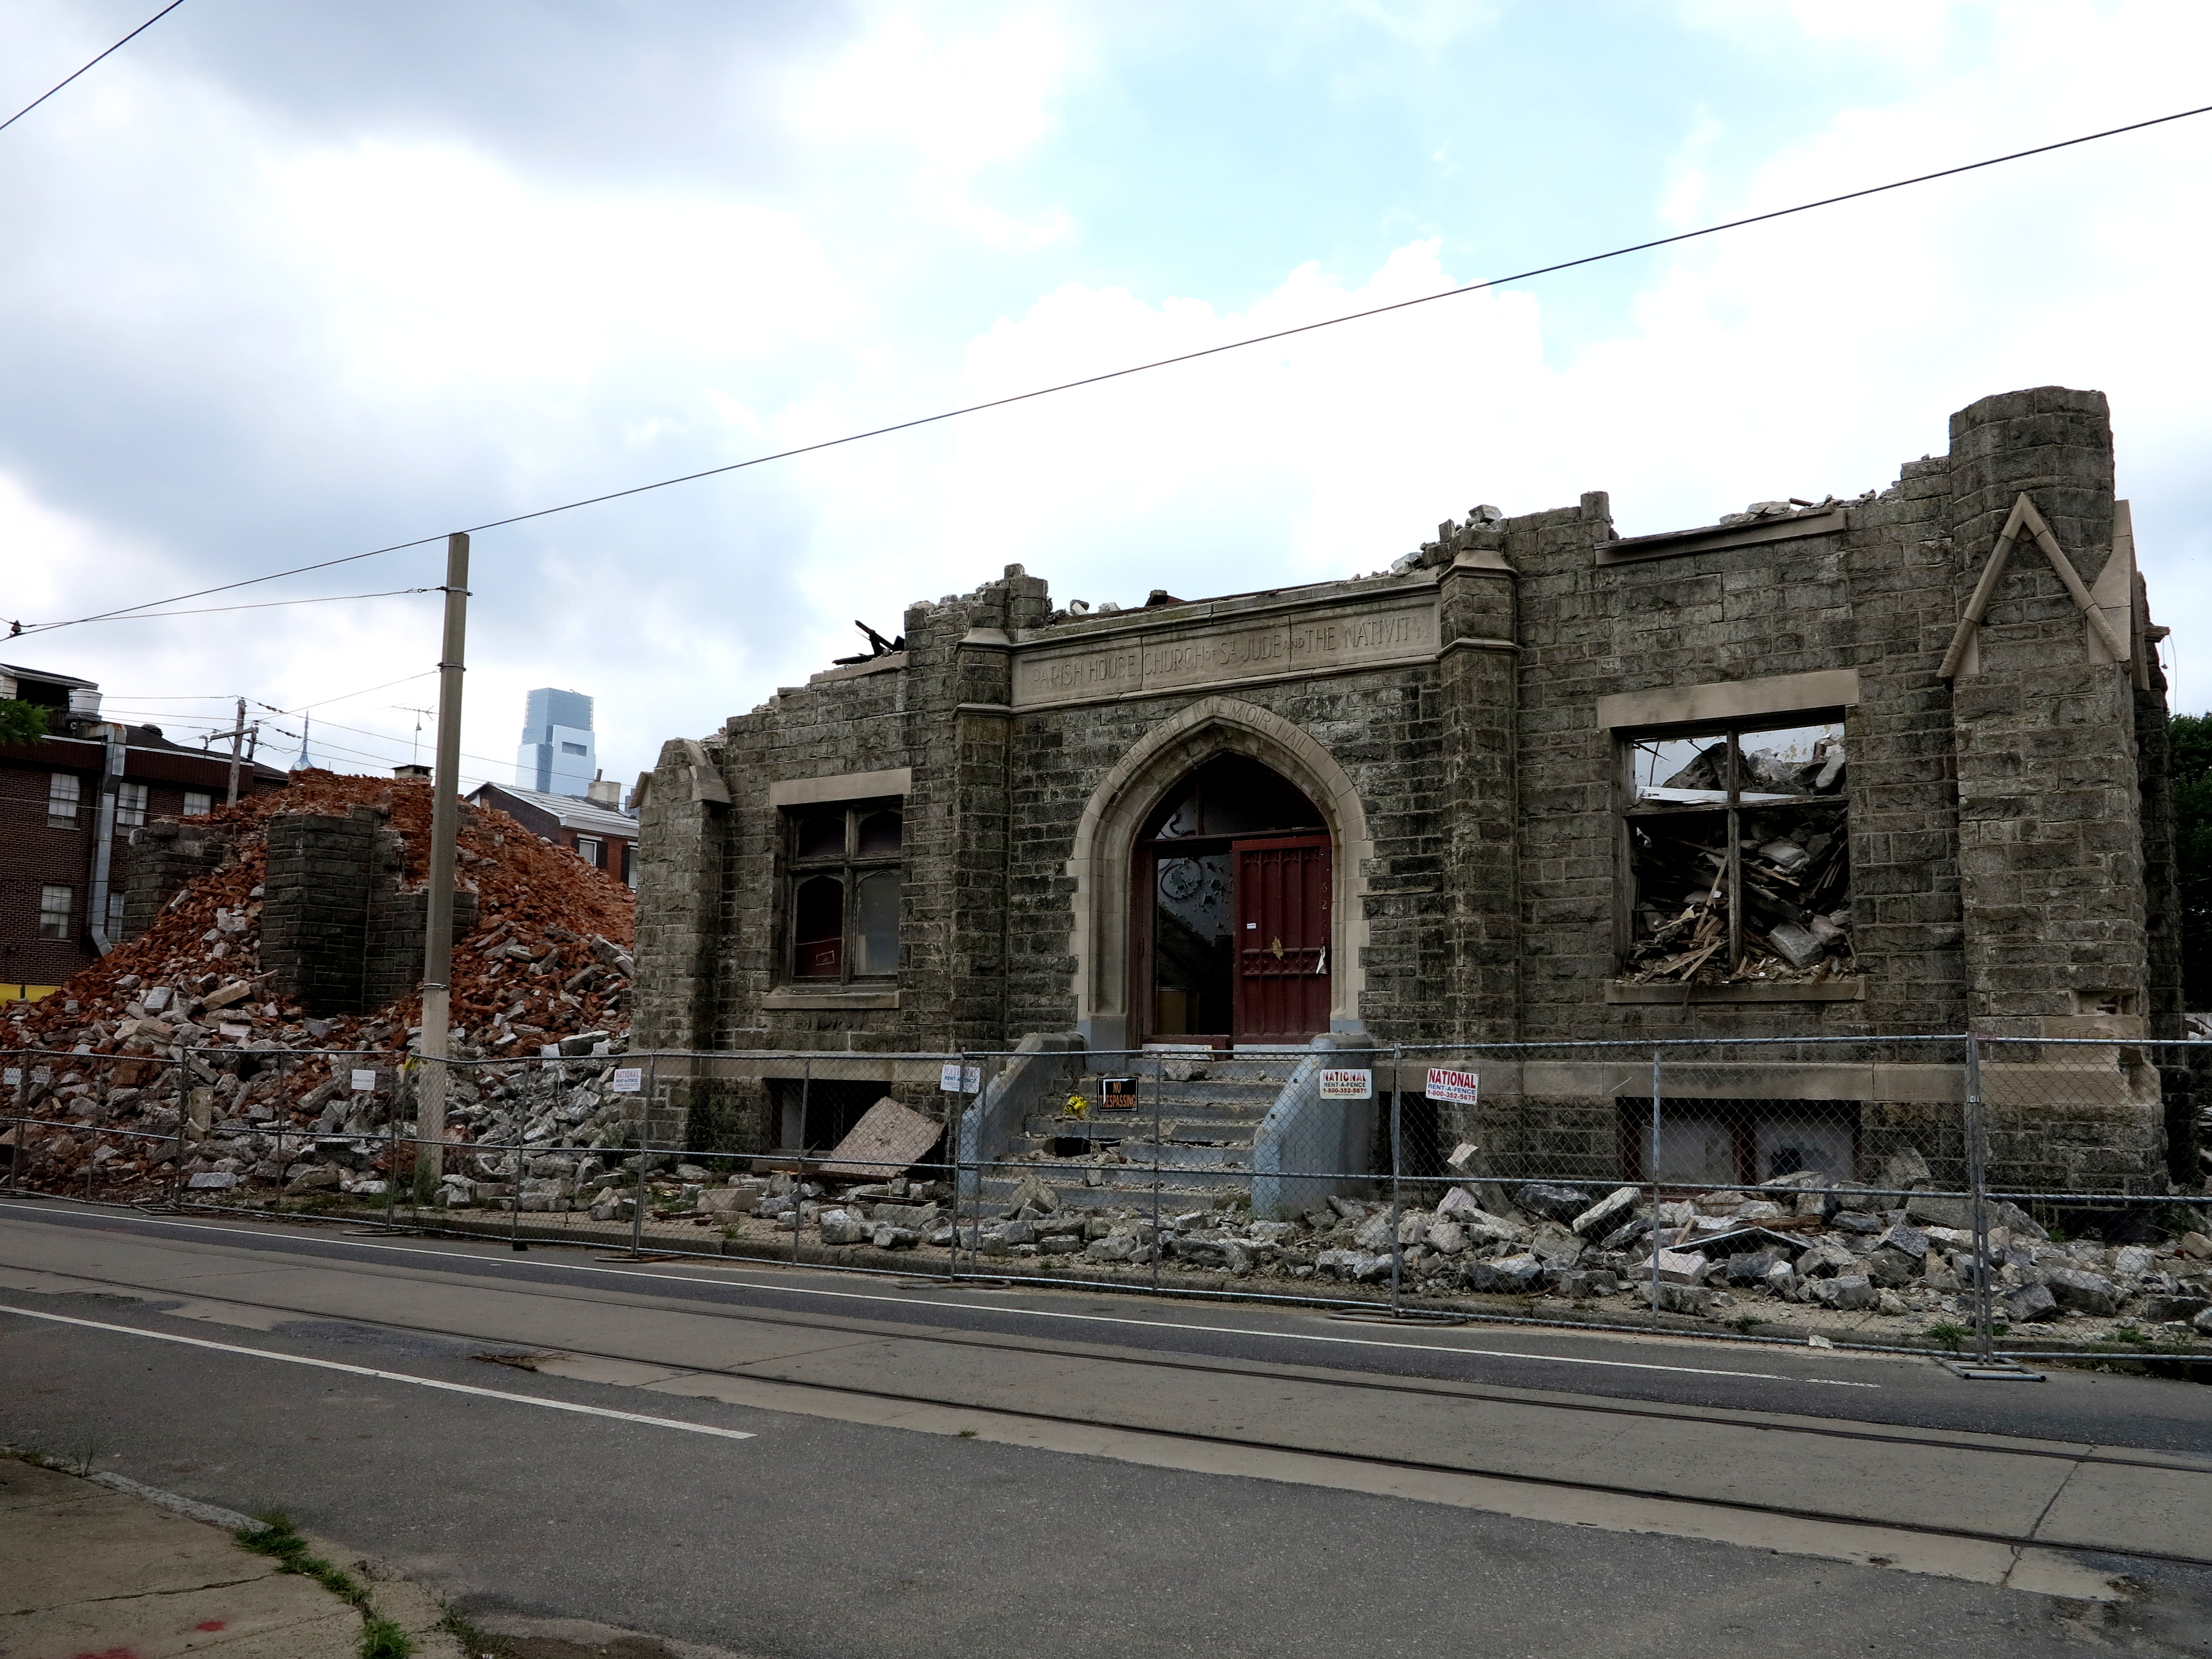 Ruffin Nichols Memorial AME demolition in progress, August 8, 2013